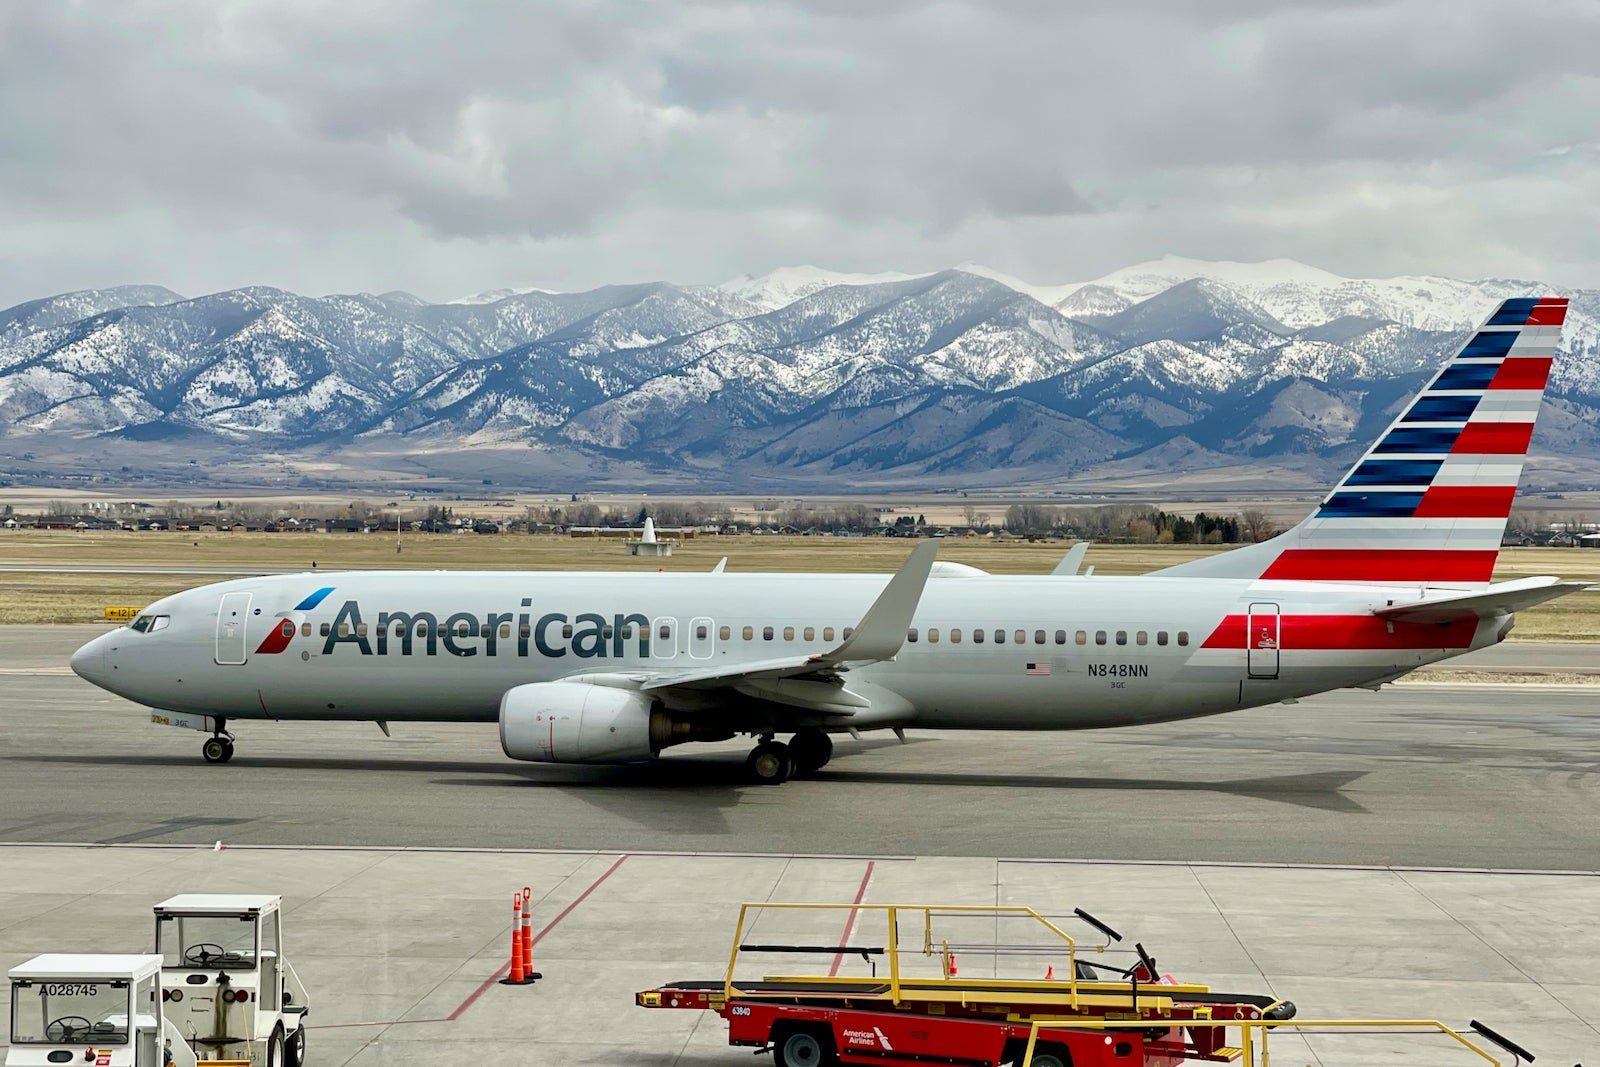 American unveils 17 new routes, goes all-Boeing 777 between Miami and JFK in big summer expansion